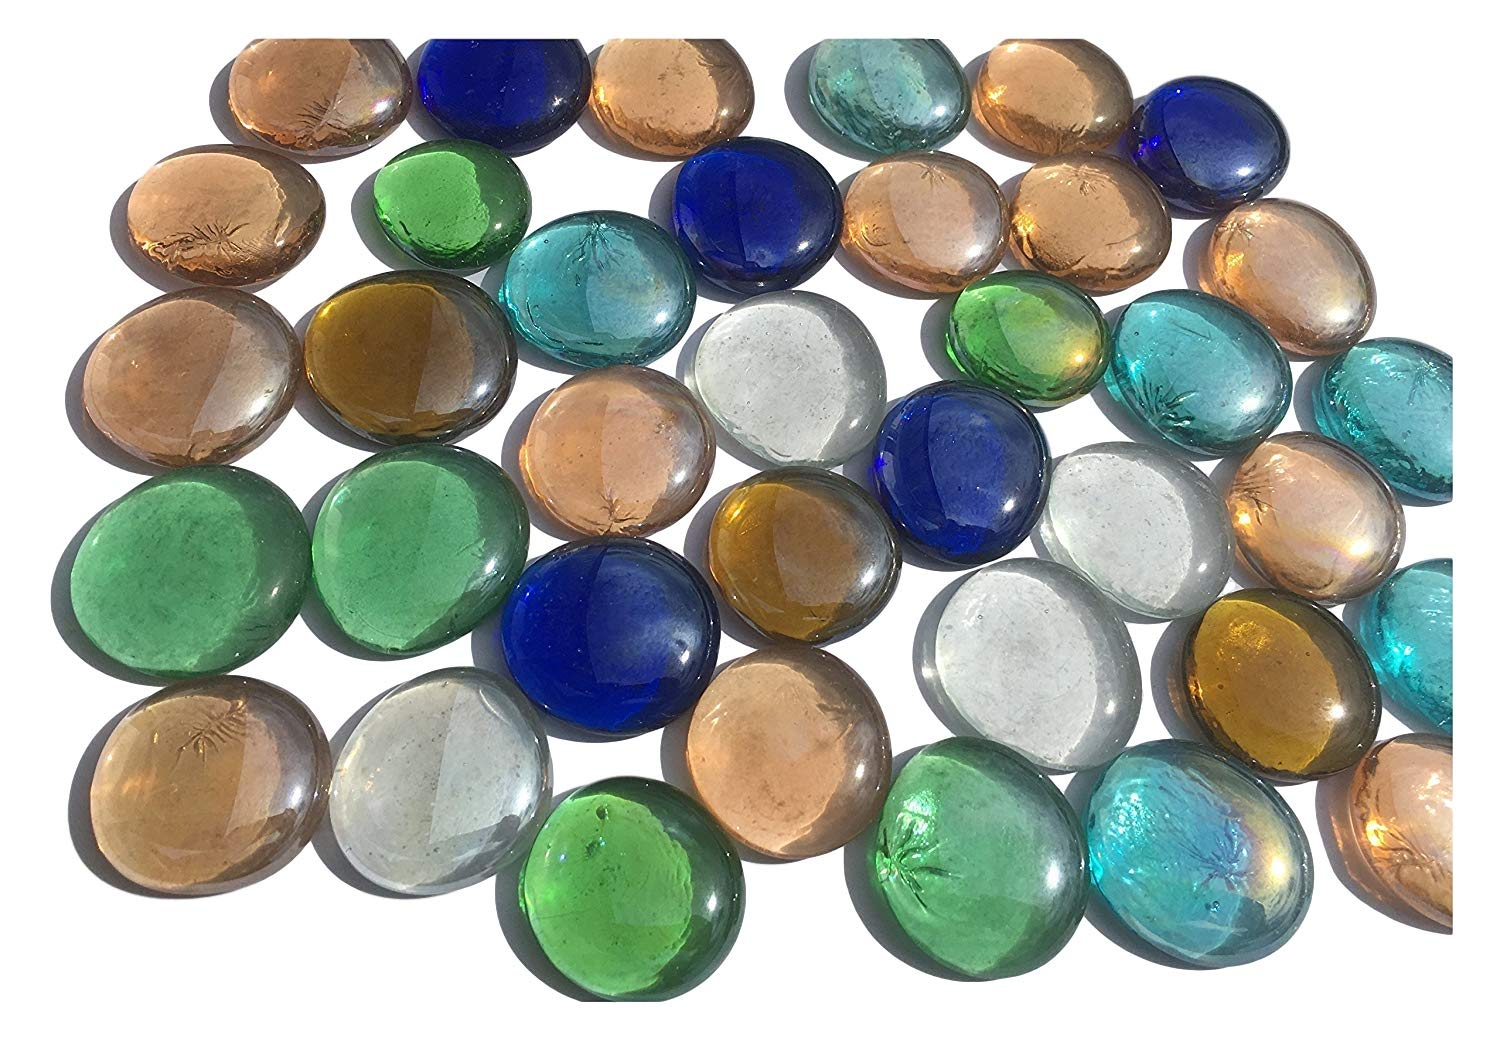 Mélange cabochon en verre Nuggets 3, 5 cm 600 g boules décoratives multicolores Plat Verre Décoration Table billes en verre de vase décoratif Garnissage cabochon en verre multicolore de Crystal King